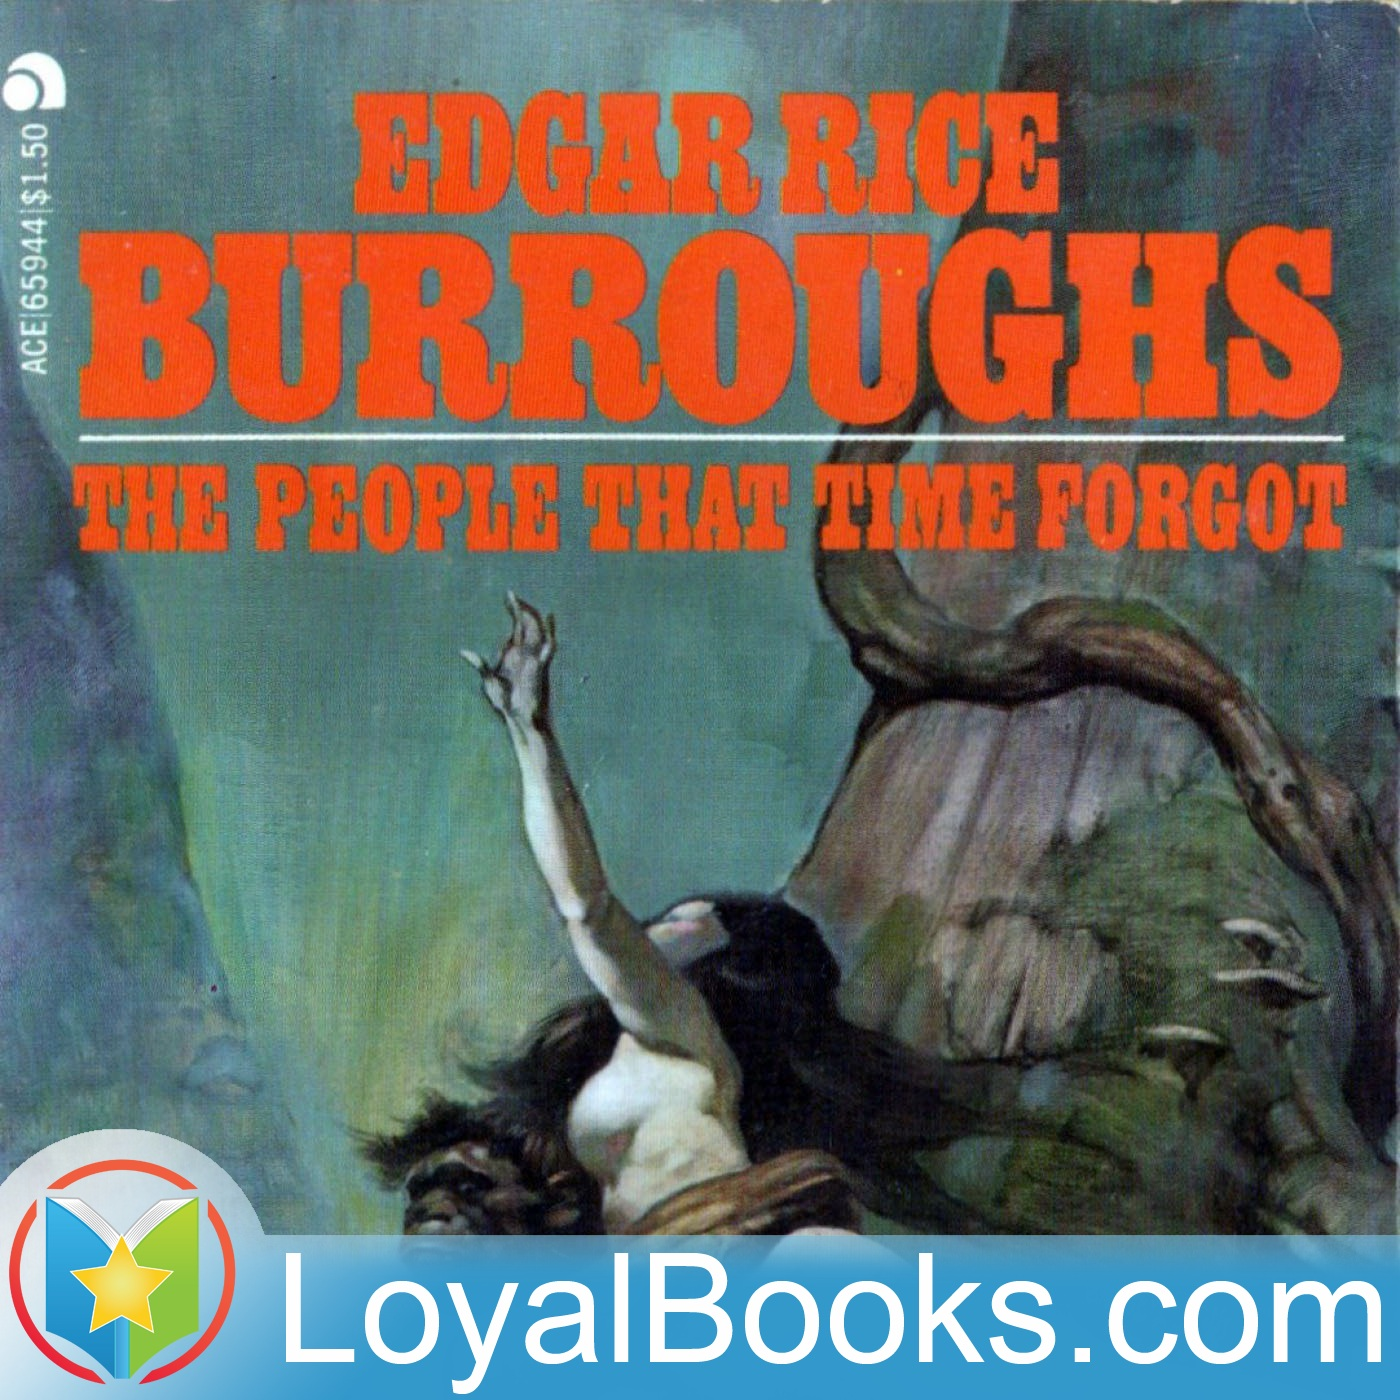 <![CDATA[The People that Time Forgot by Edgar Rice Burroughs]]>